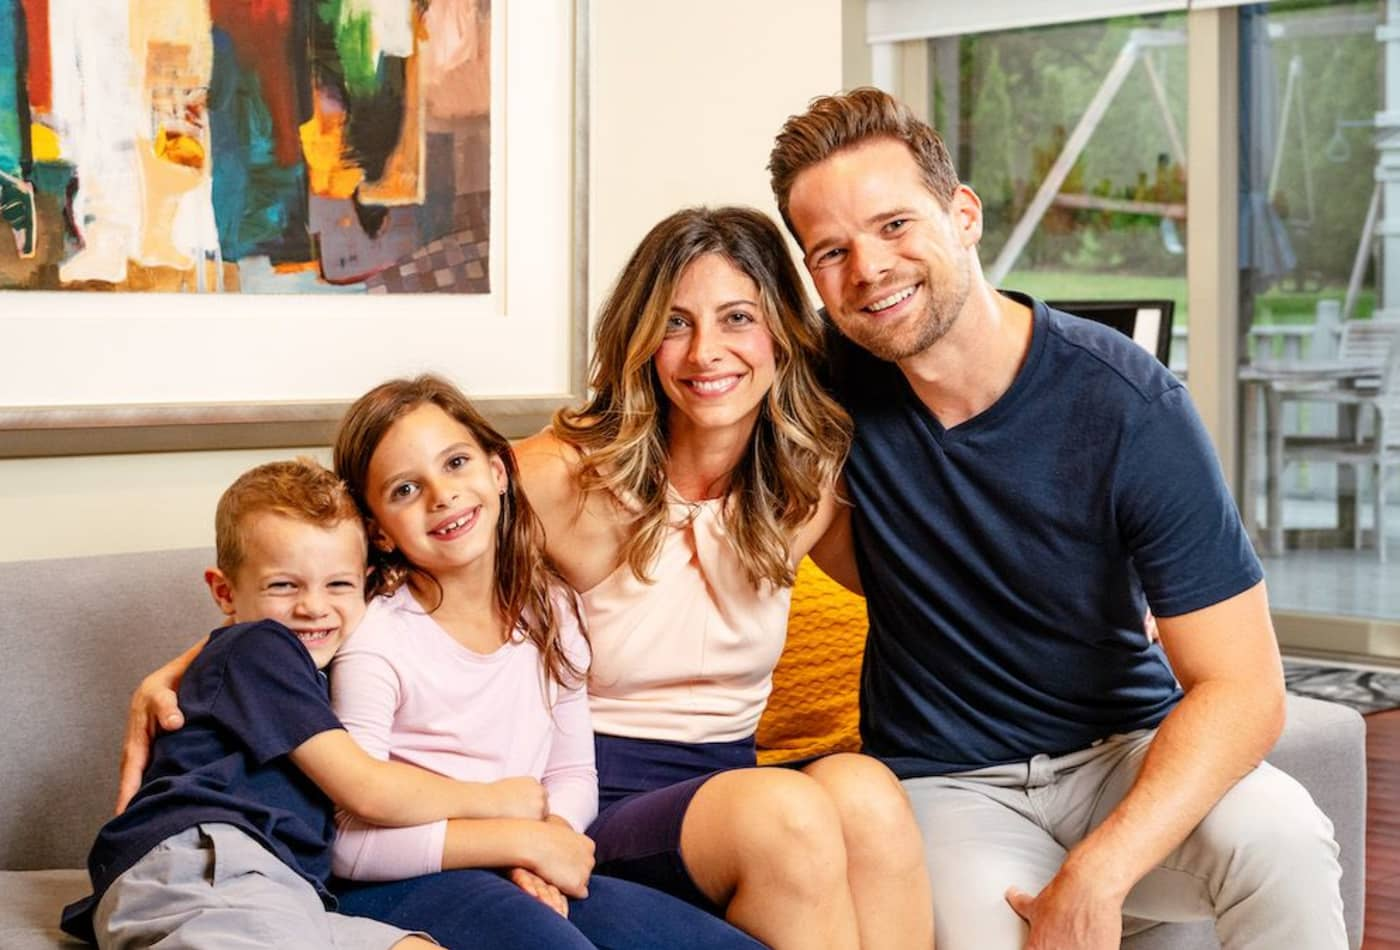 Here are 3 budget strategies this couple used to pay off their $195,000 mortgage in under 4 years